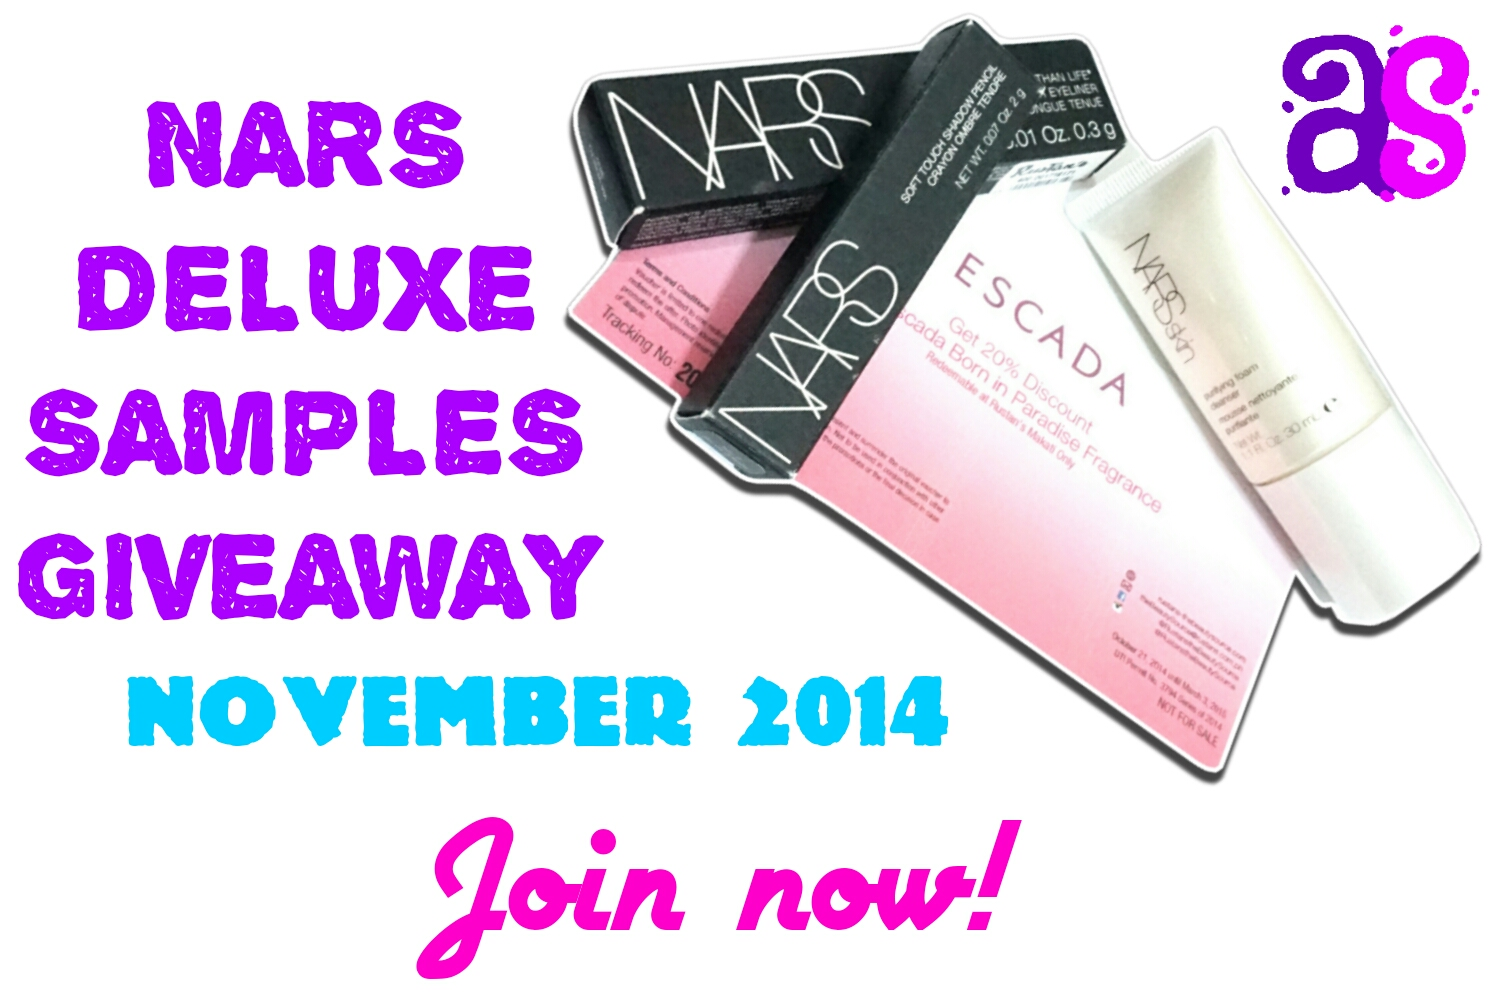 November Nars Samples Giveaway